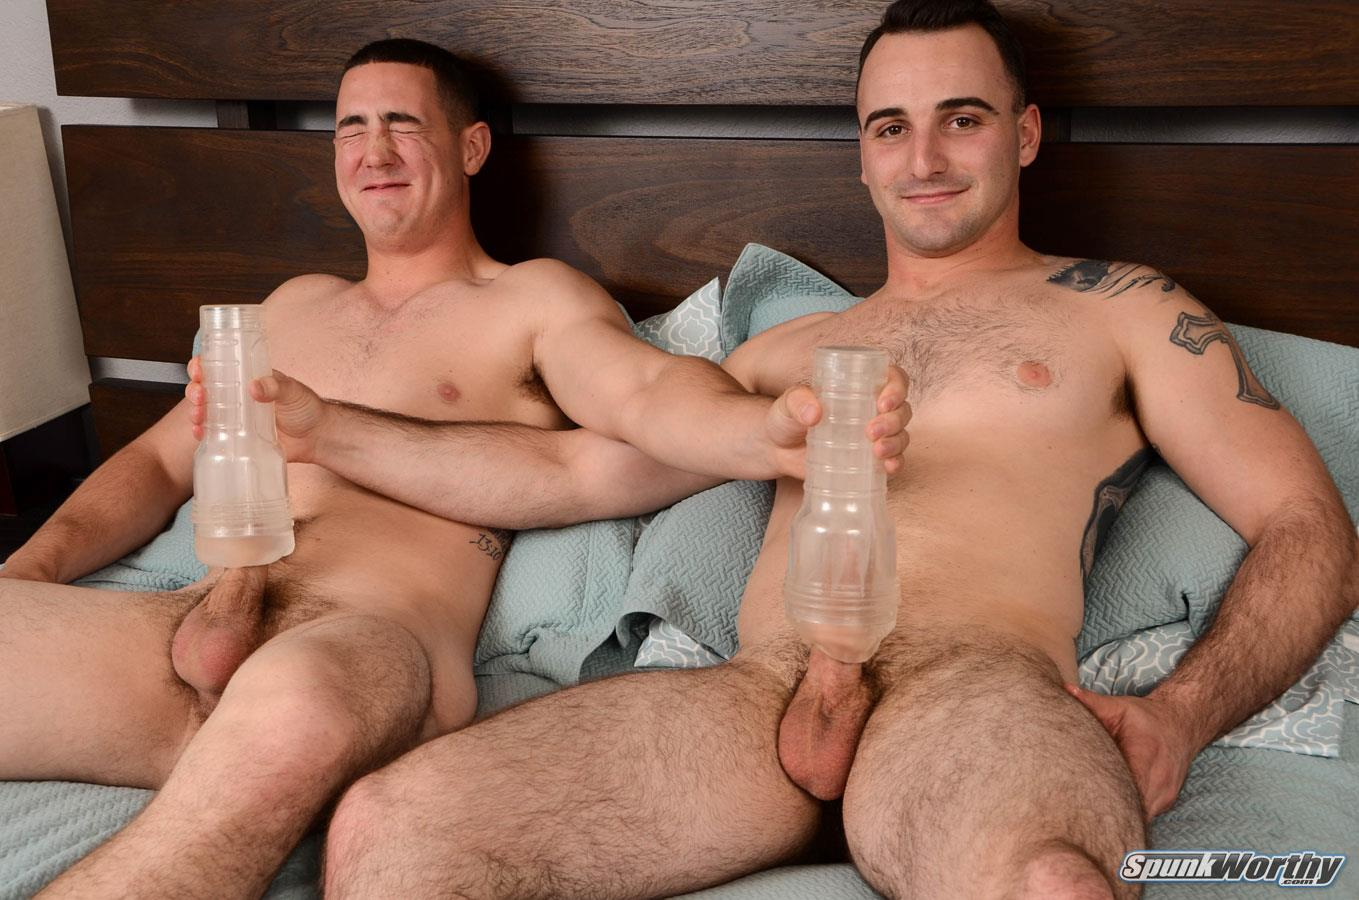 SpunkWorthy-Damien-and-Tom-Army-Buddies-Jerking-Off-Together-Army-Cock-Amateur-Gay-Porn-15 Straight Army Boys Share Some Jerkoff Time Together